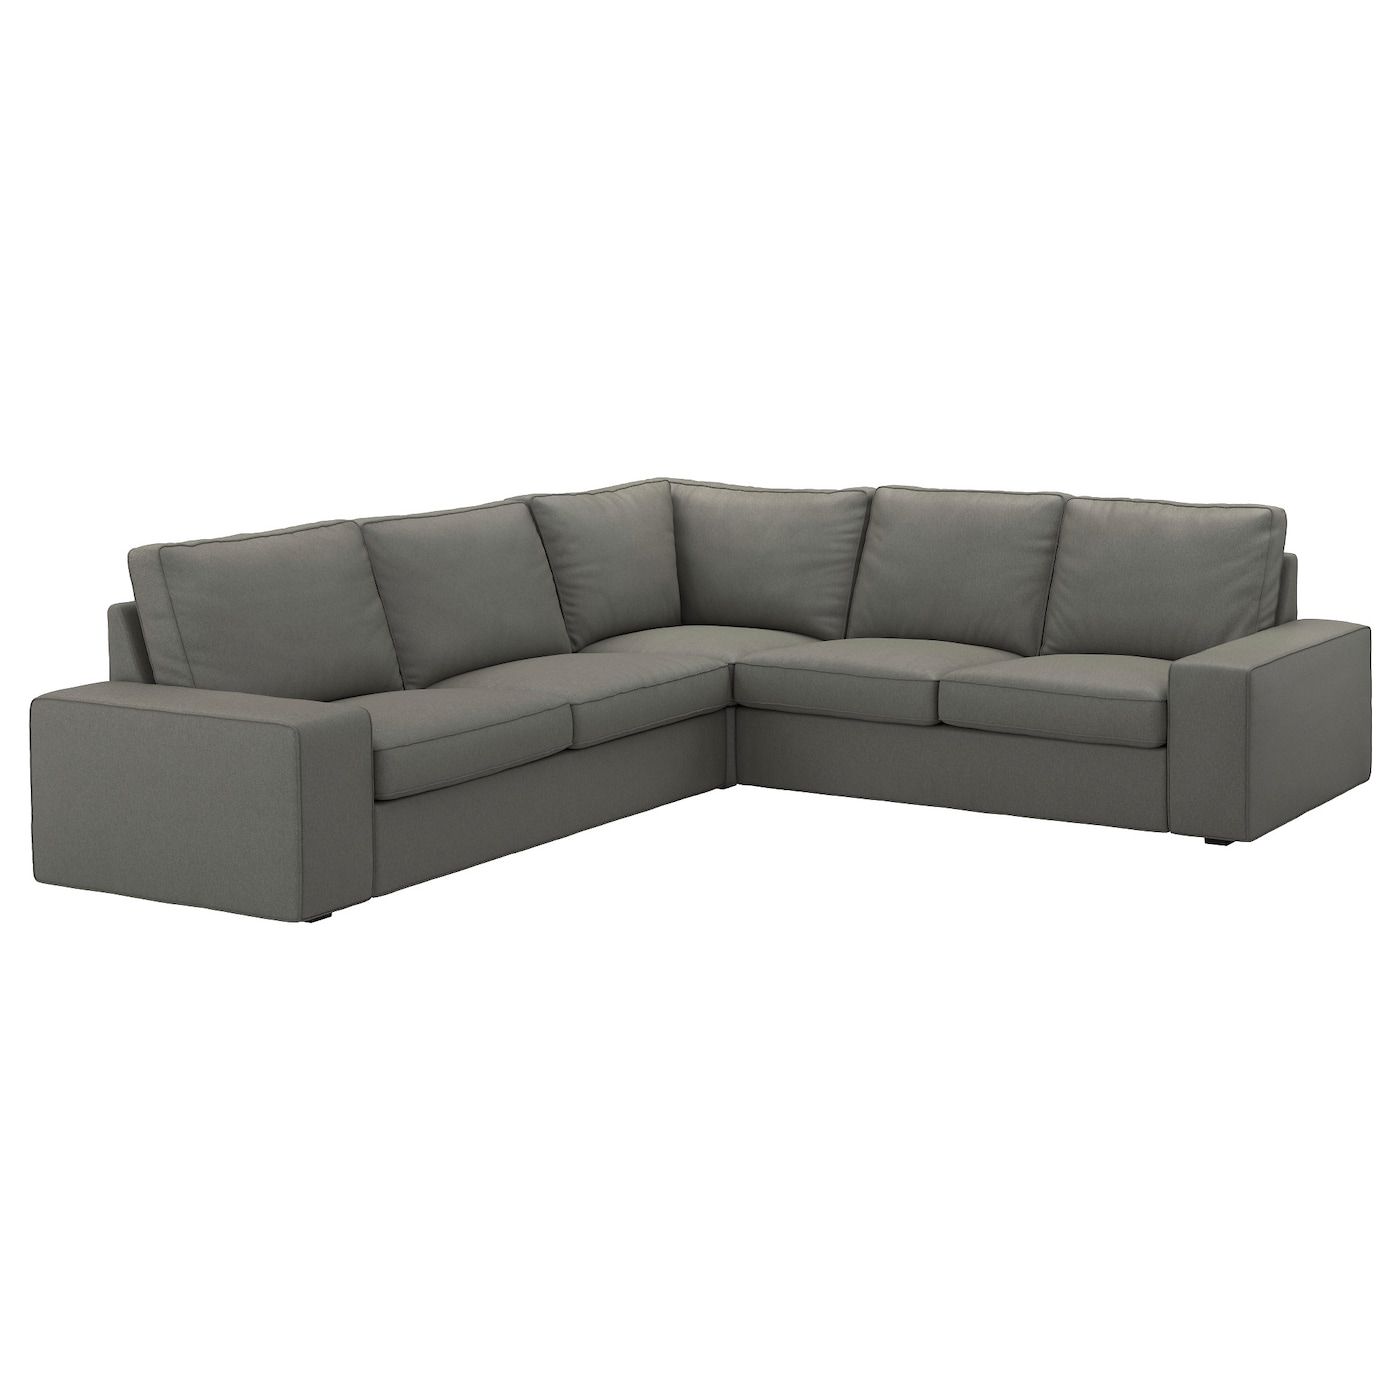 kivik corner sofa 4 seat borred grey green ikea. Black Bedroom Furniture Sets. Home Design Ideas